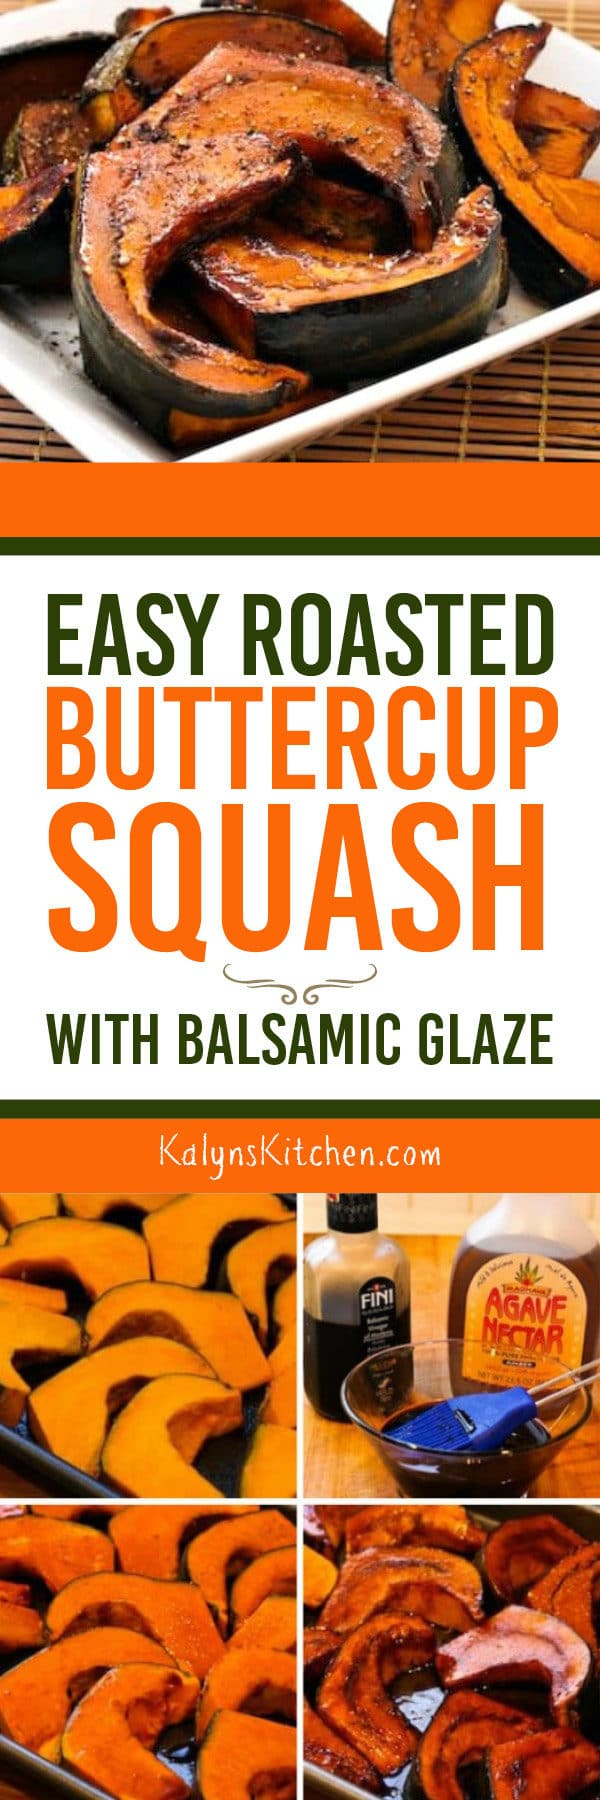 Easy Roasted Buttercup Squash with Balsamic Glaze found on KalynsKitchen.com